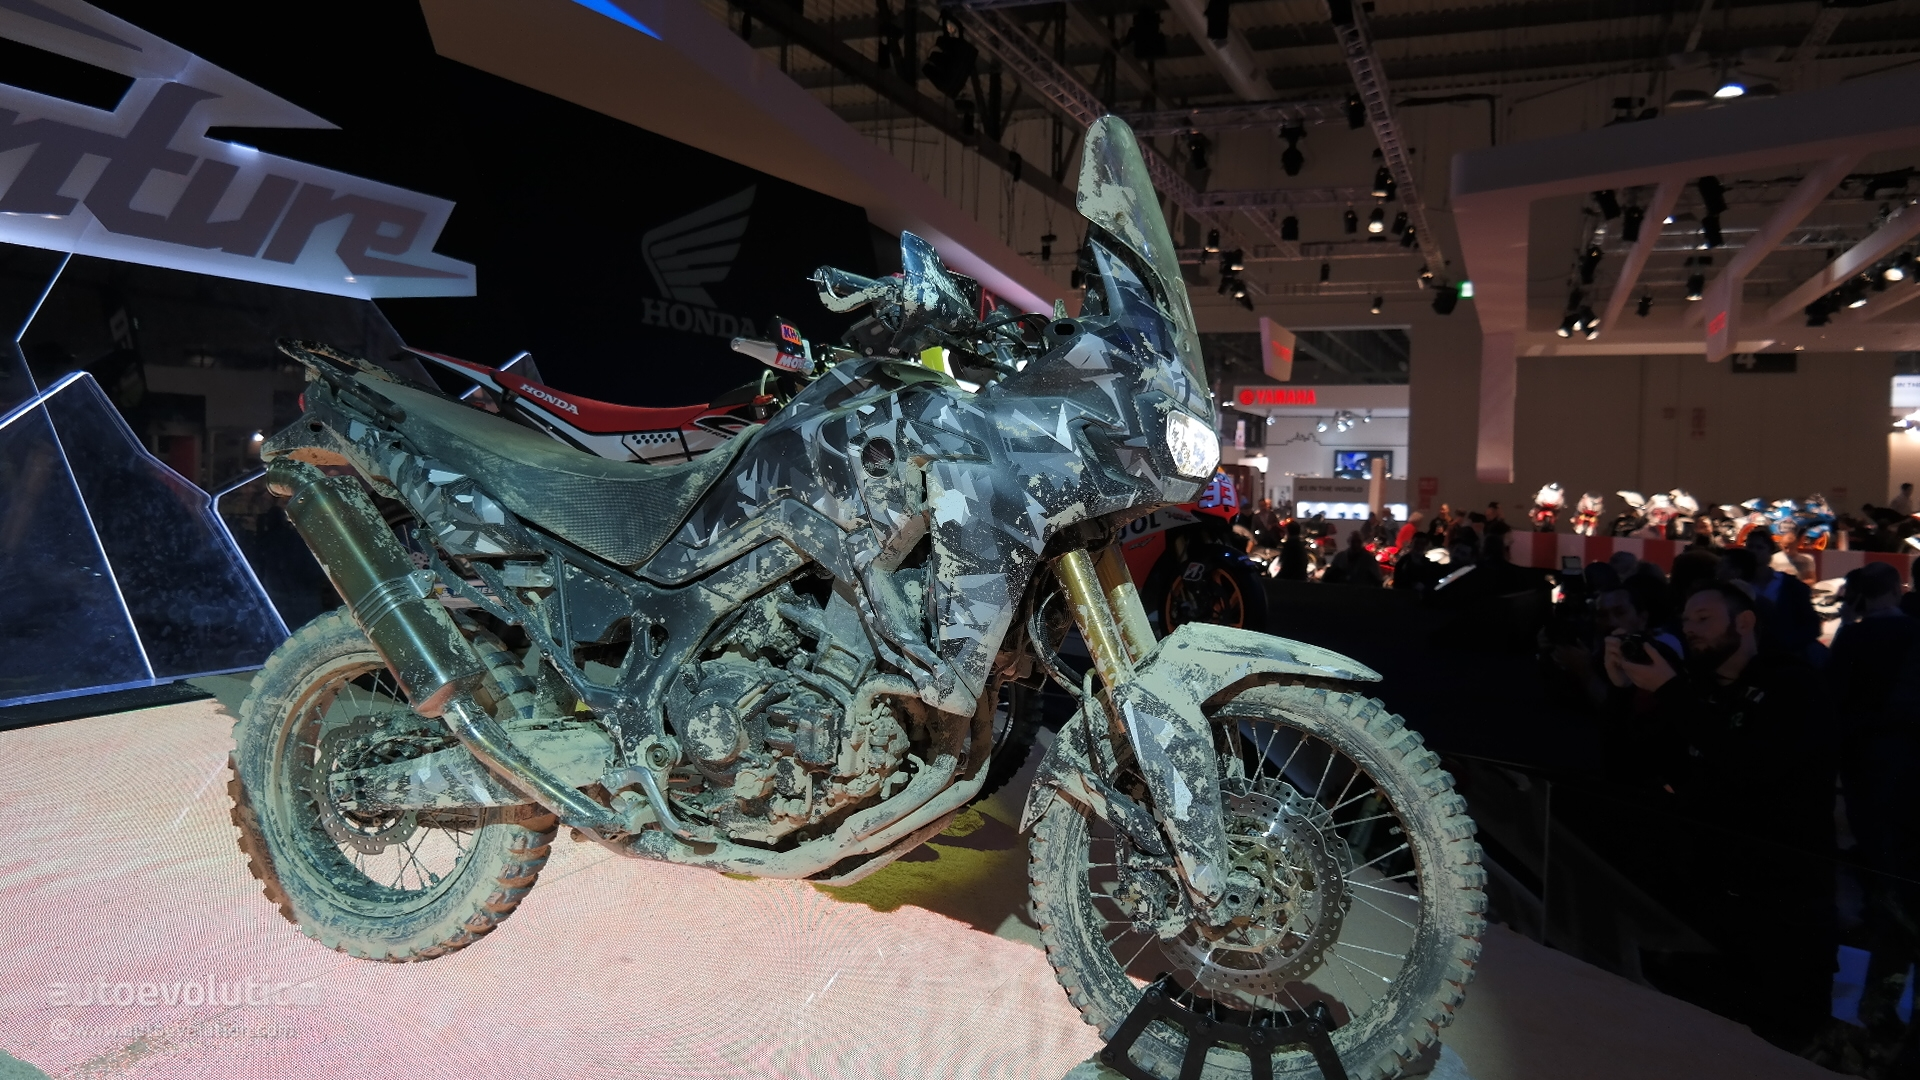 Honda Africa Twin Final Concept Revealed At Eicma 2014